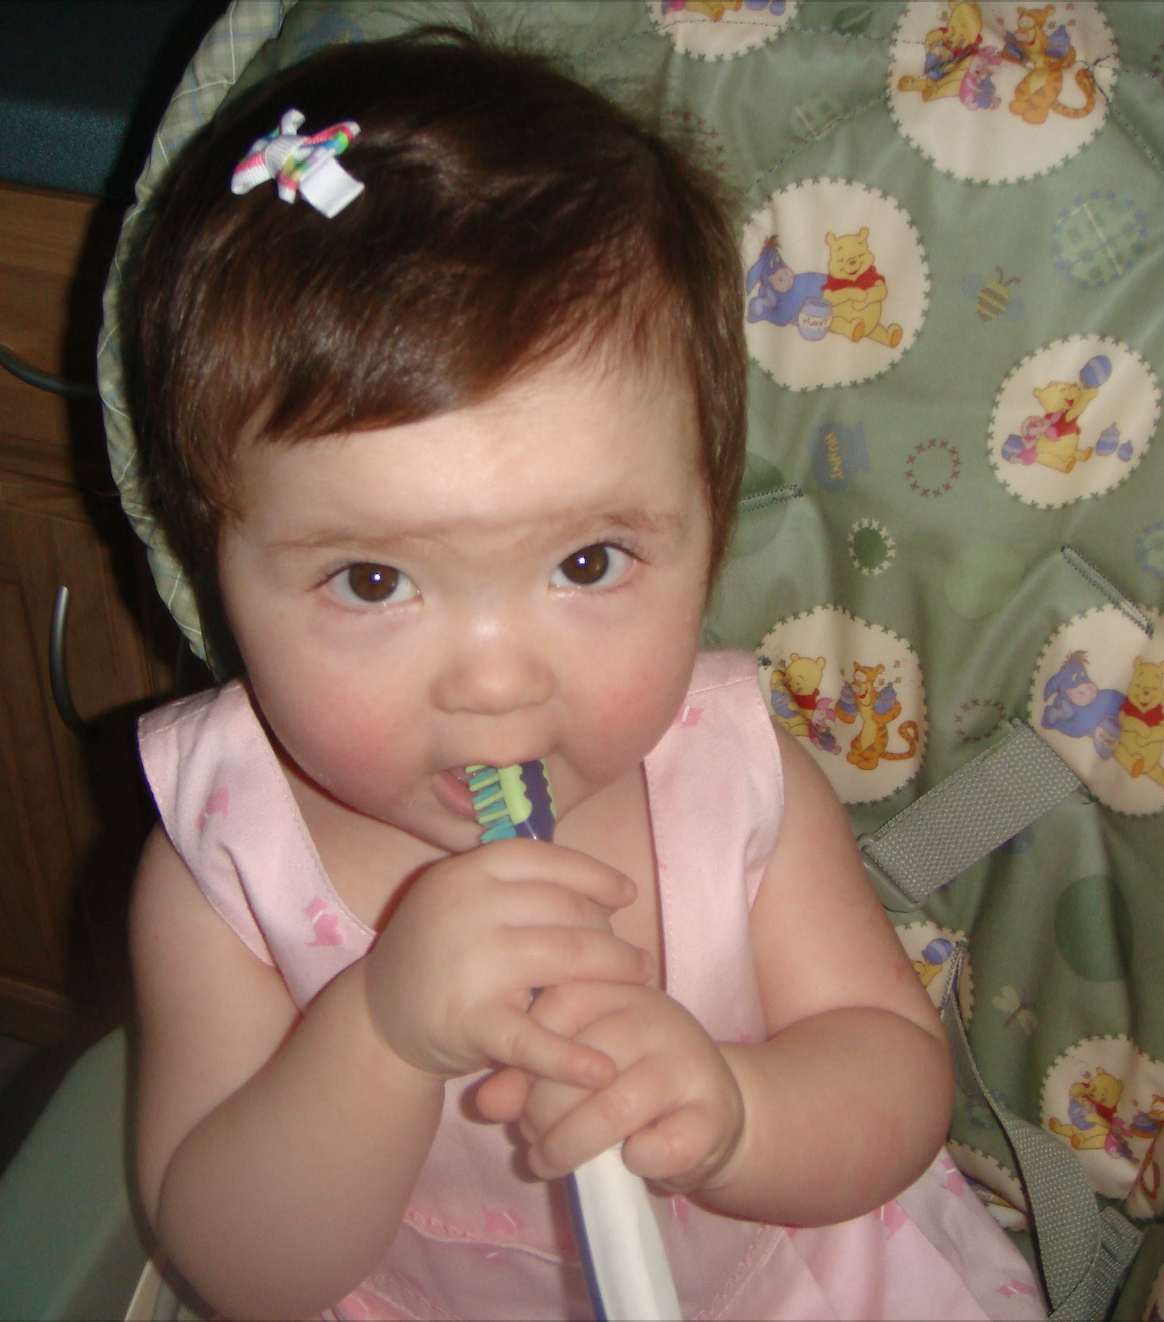 5 dental care tricks for infants and toddlers